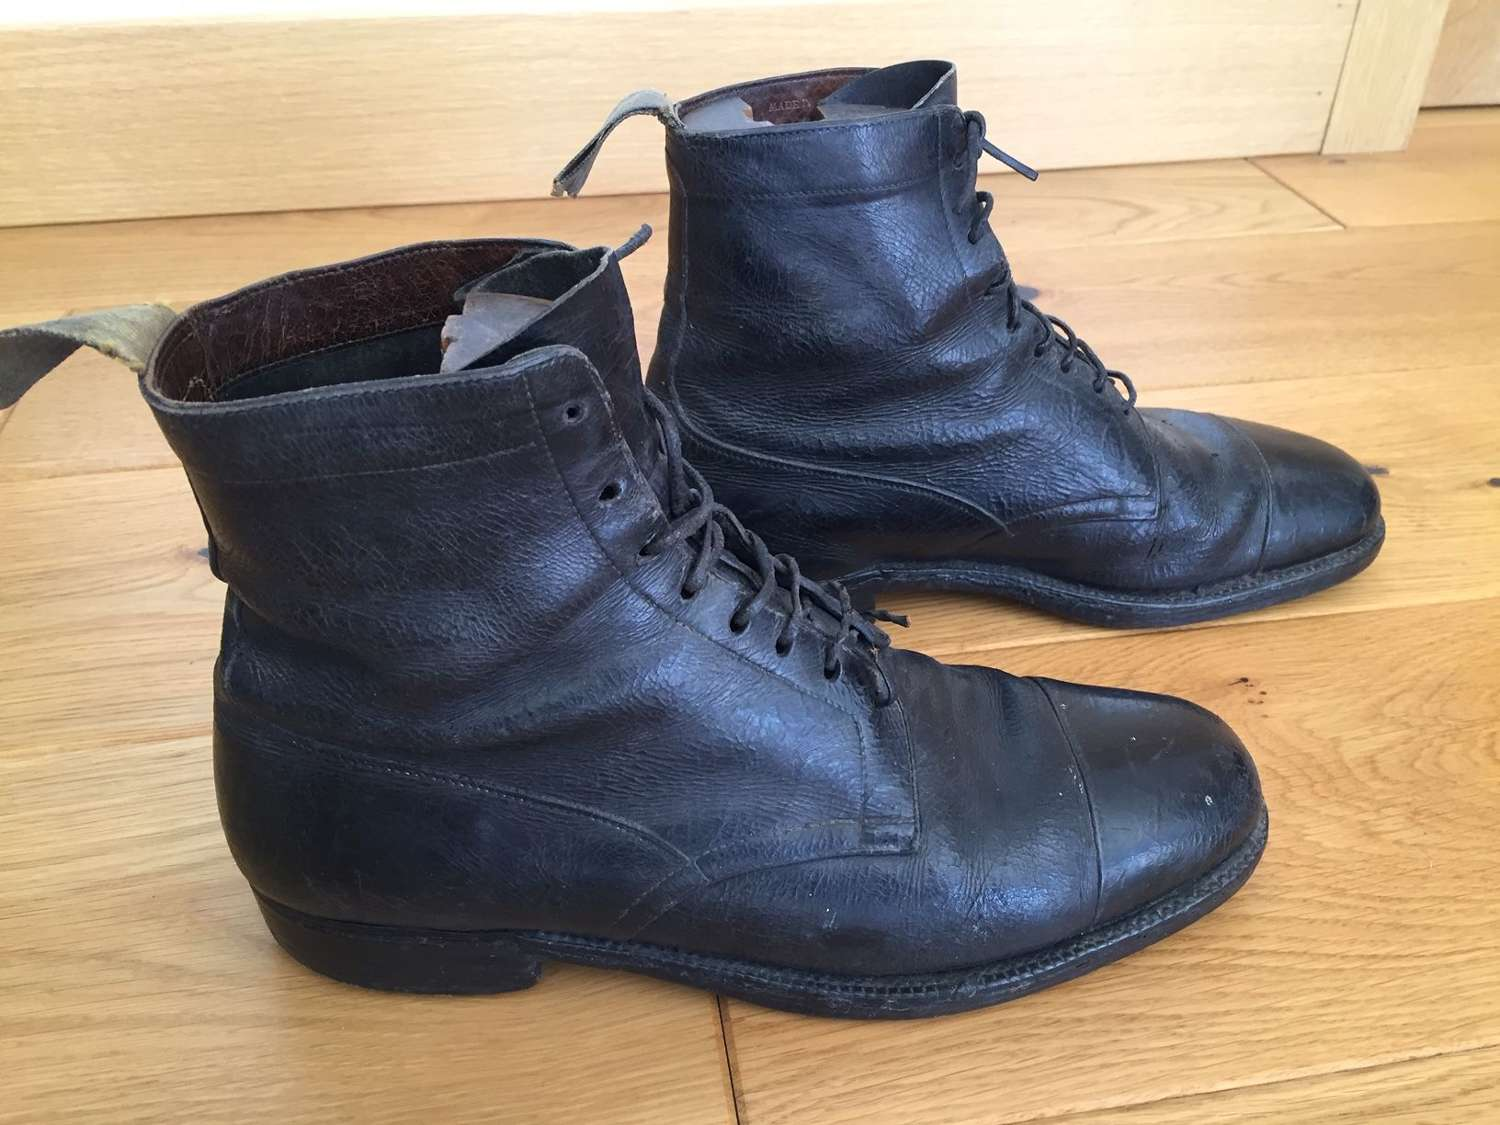 WW1 or WW2 Officer's private purchase boots